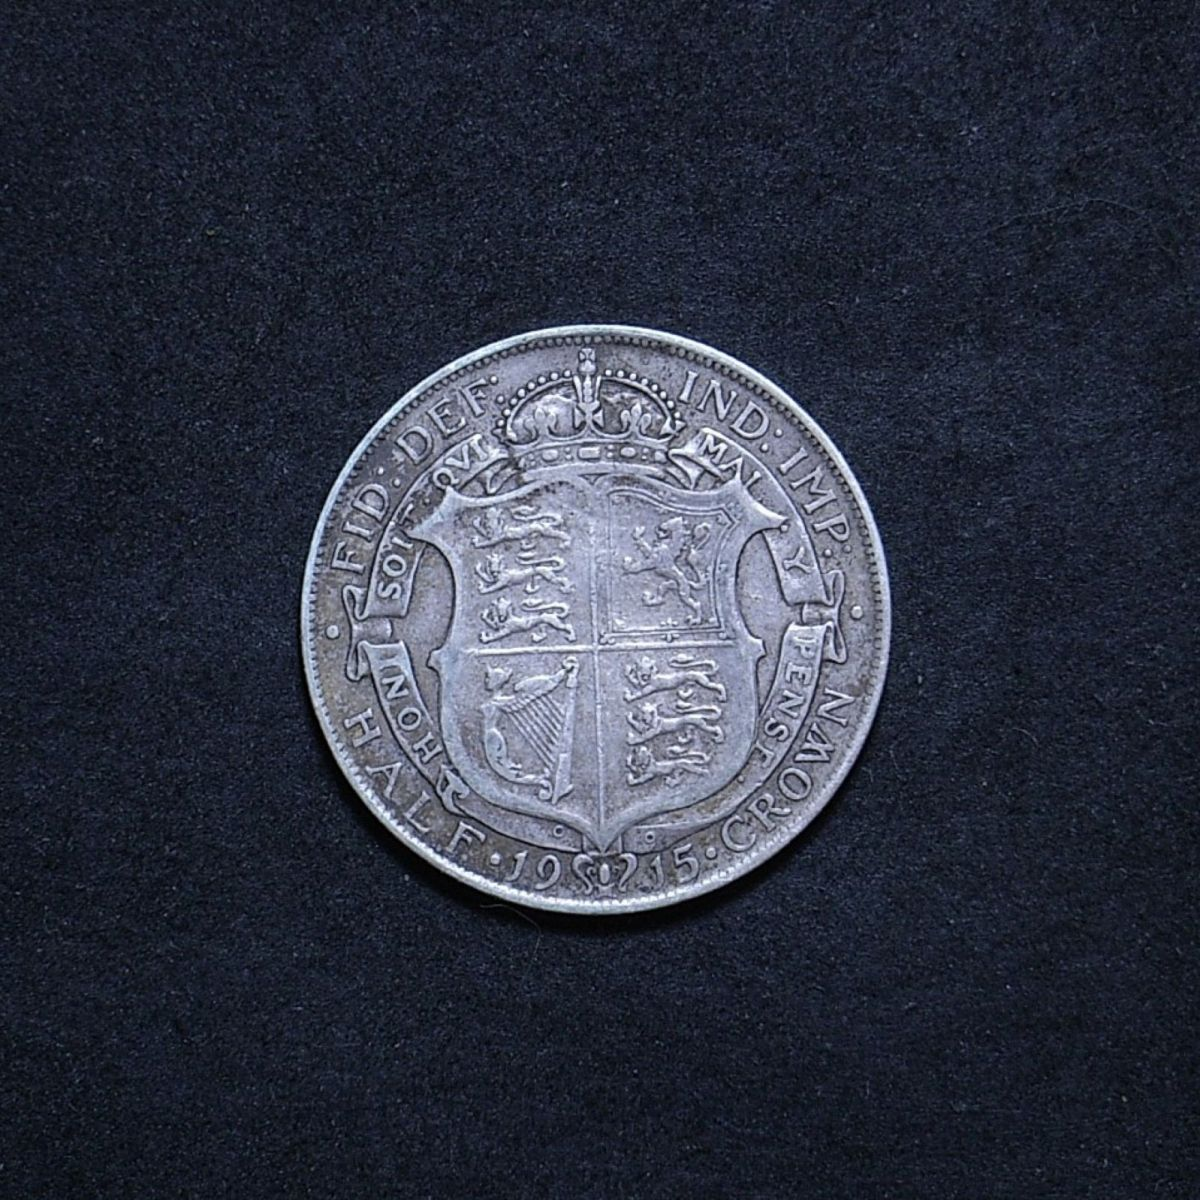 UK Half Crown 1915 reverse showing overall appearance